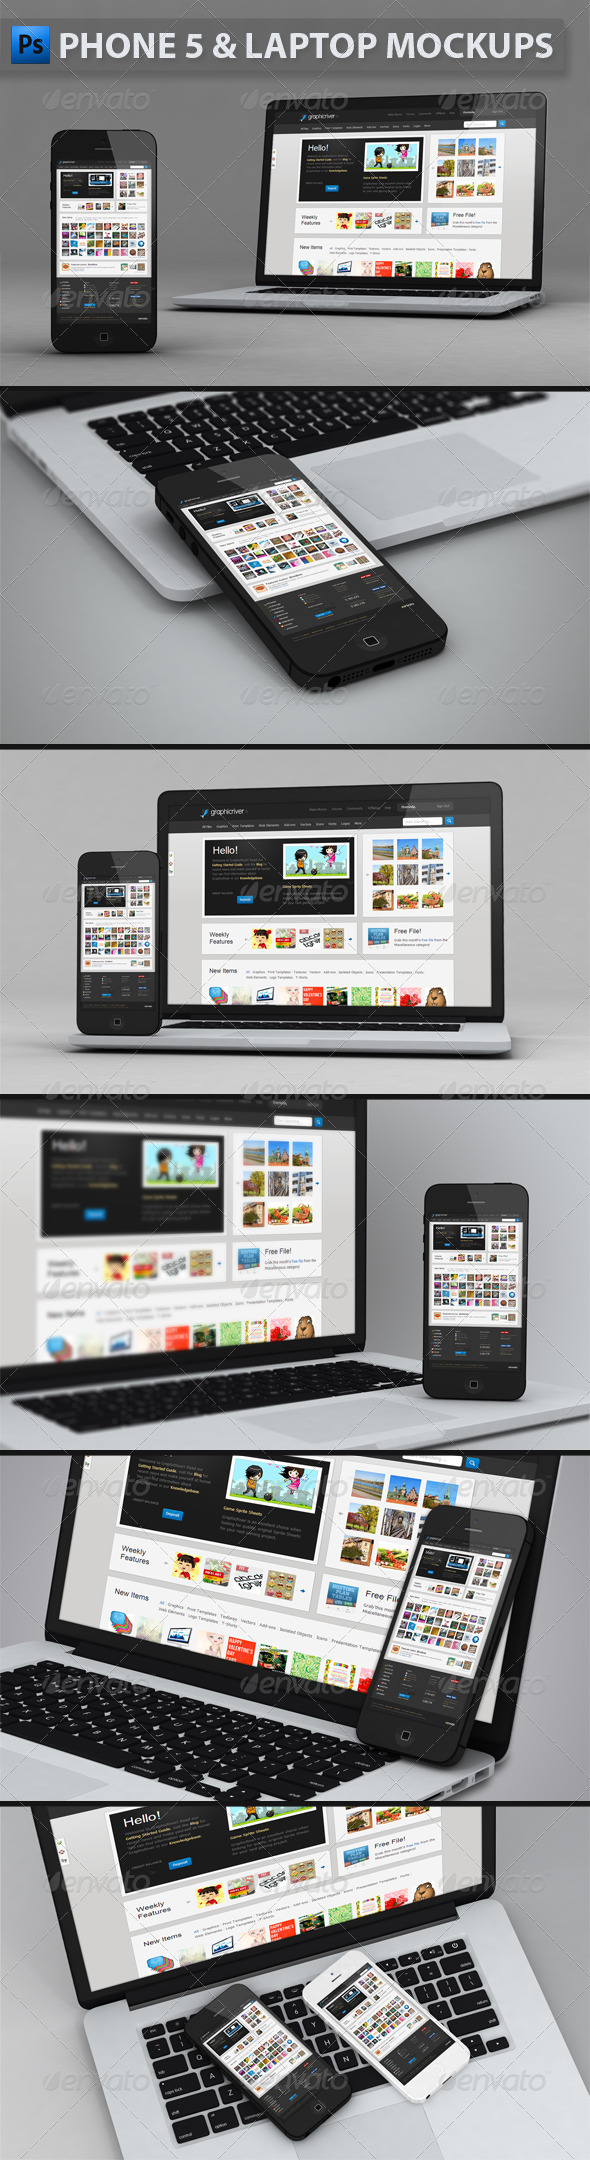 Phone and Laptop Mockups - Mobile Displays